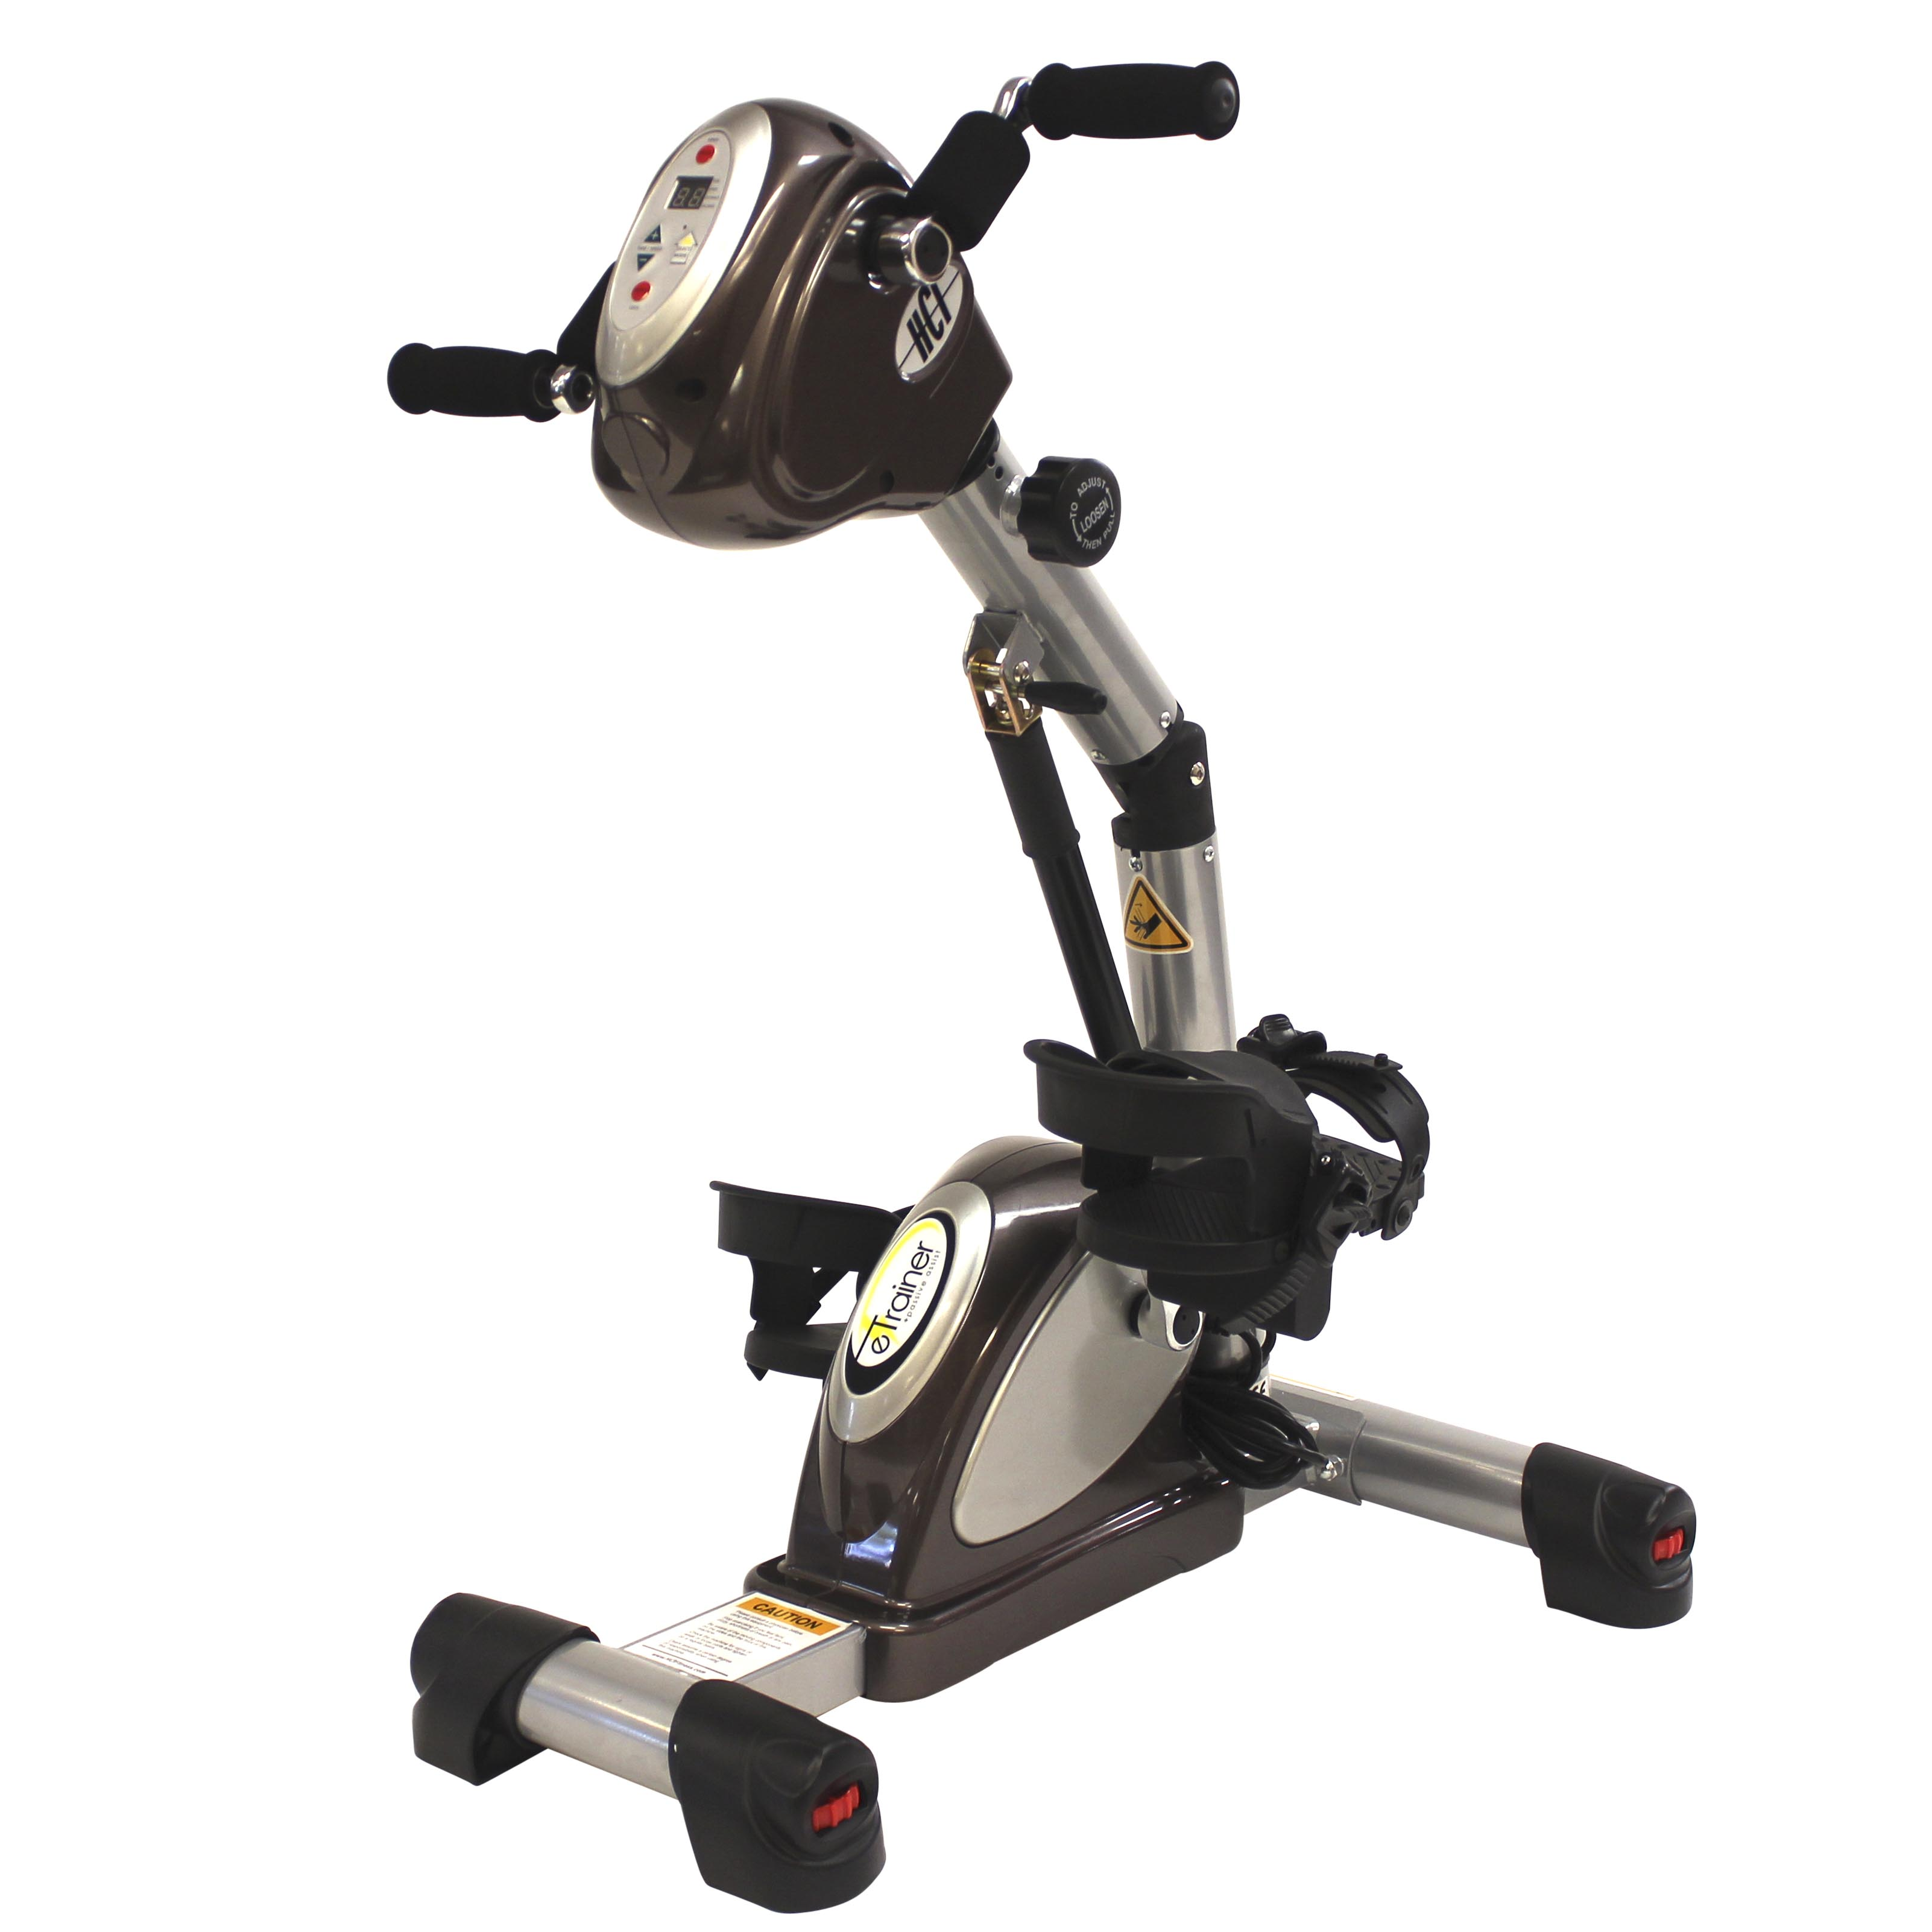 Etrainer Affordable Forced Exercise Bike